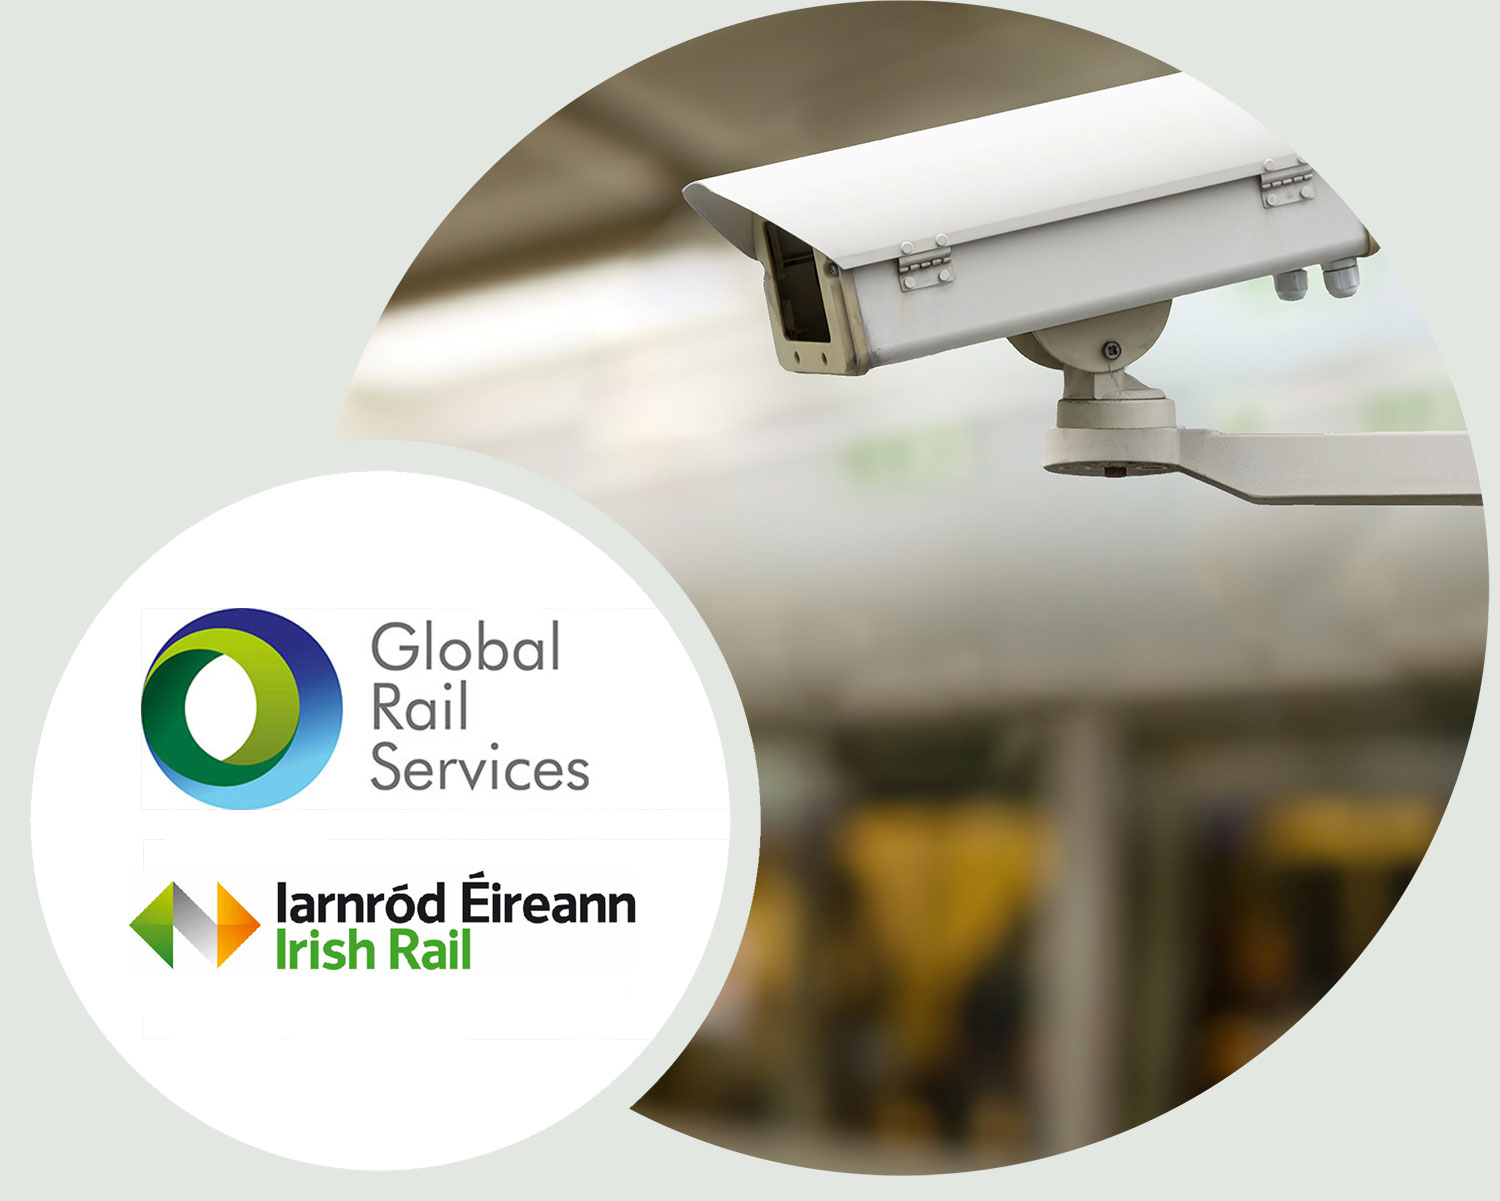 CCTV Contract Success For Global Rail Services in Ireland